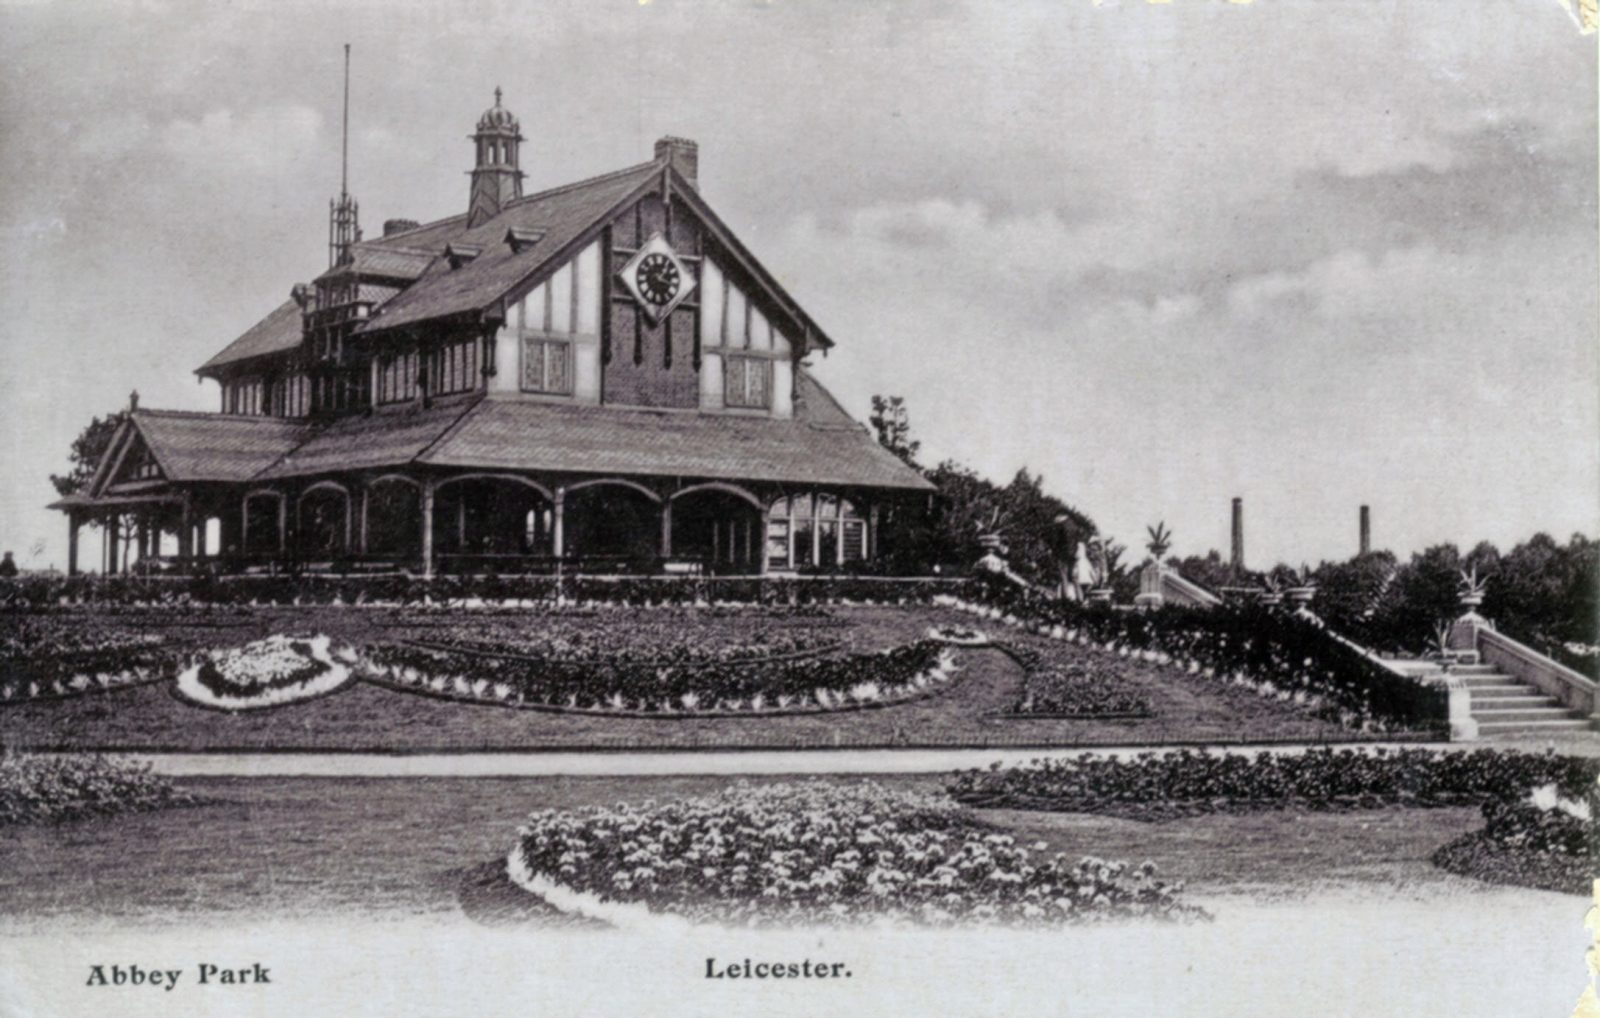 Abbey Park, Leicester. 1901-1920: The Pavilion and formal bedding (File:1267)